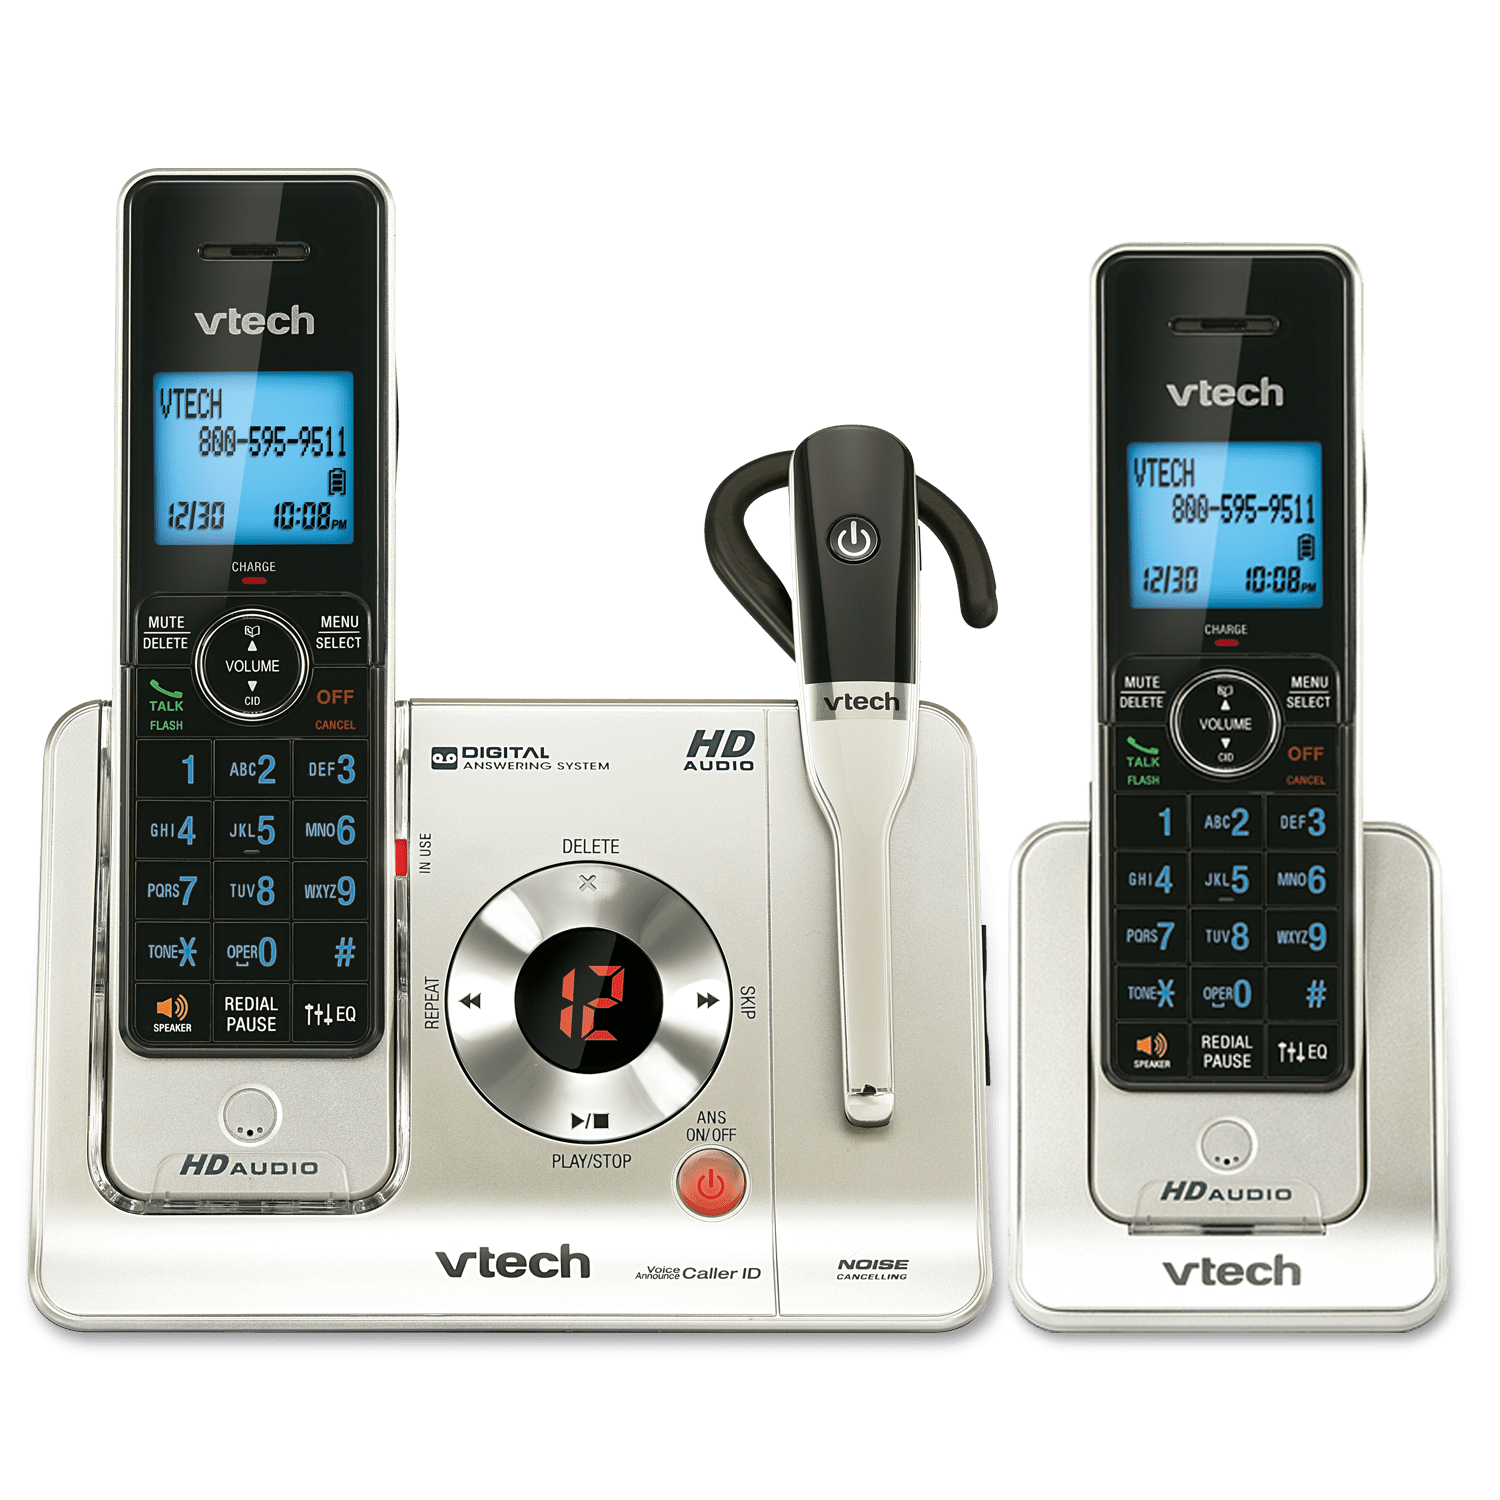 2 Handset Answering System With Cordless Headset